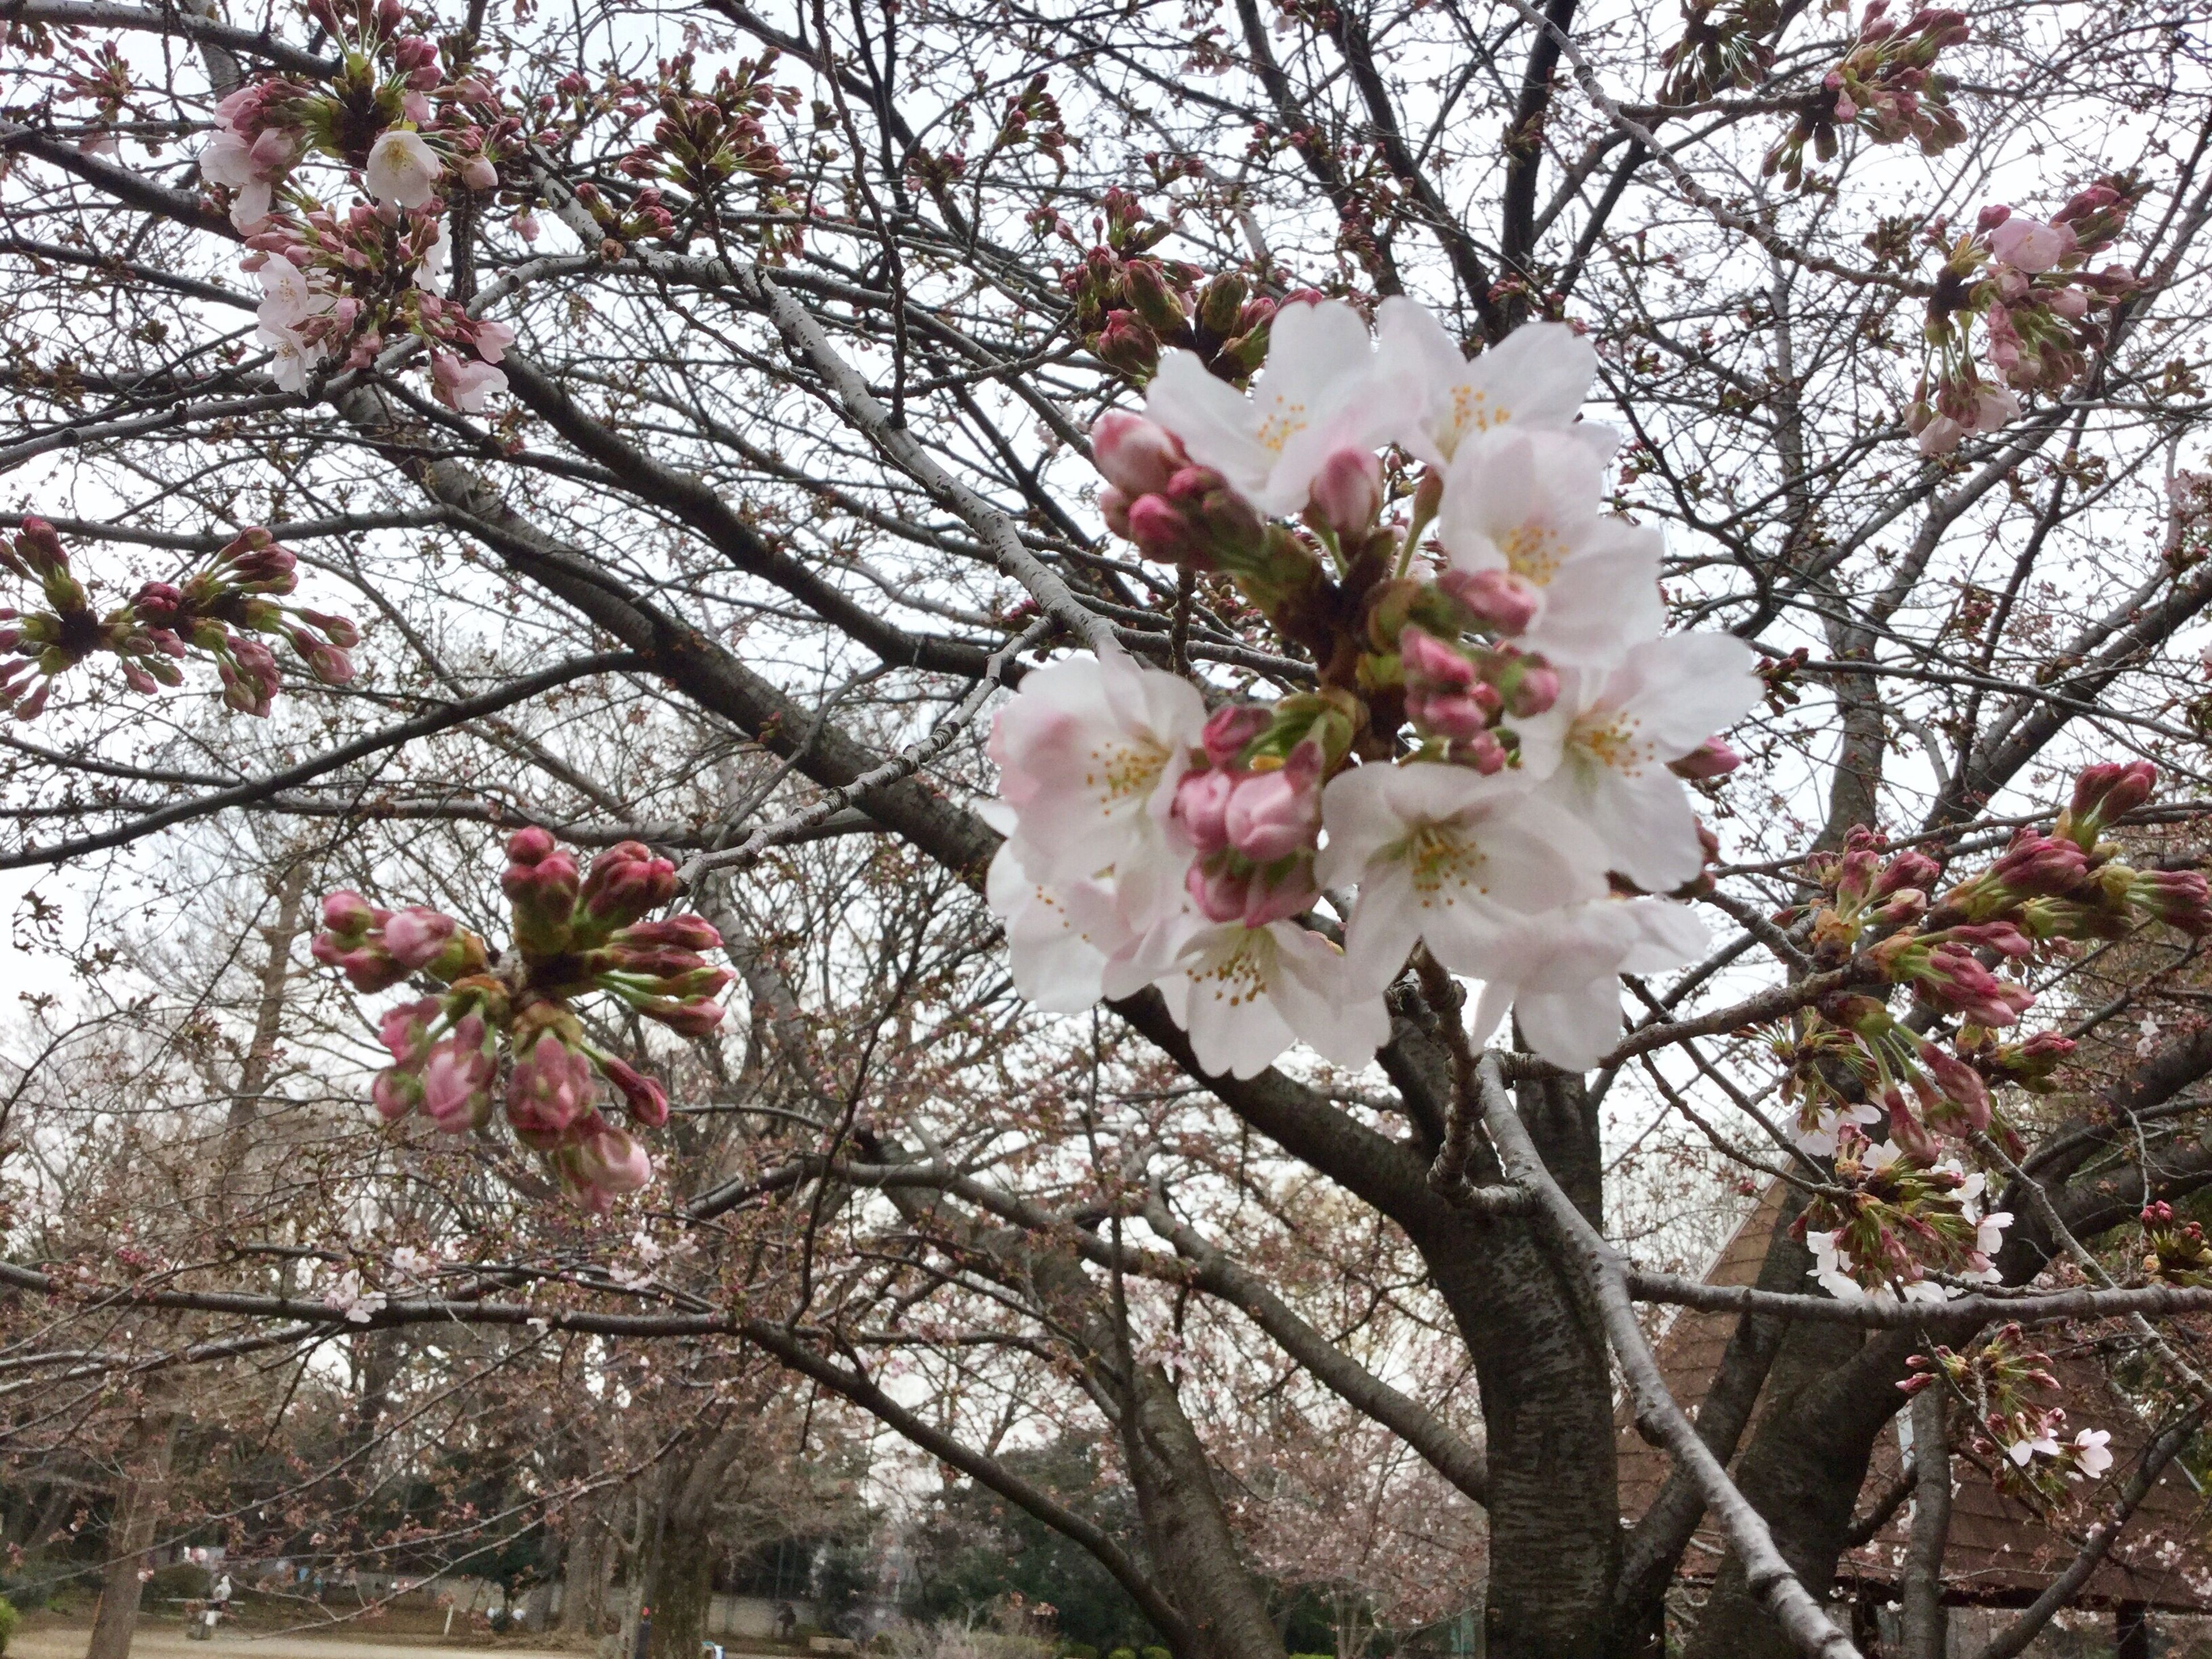 growth, tree, nature, flower, beauty in nature, pink color, branch, blossom, springtime, flower head, petal, no people, close-up, fragility, almond tree, freshness, plum blossom, outdoors, day, sky, rhododendron